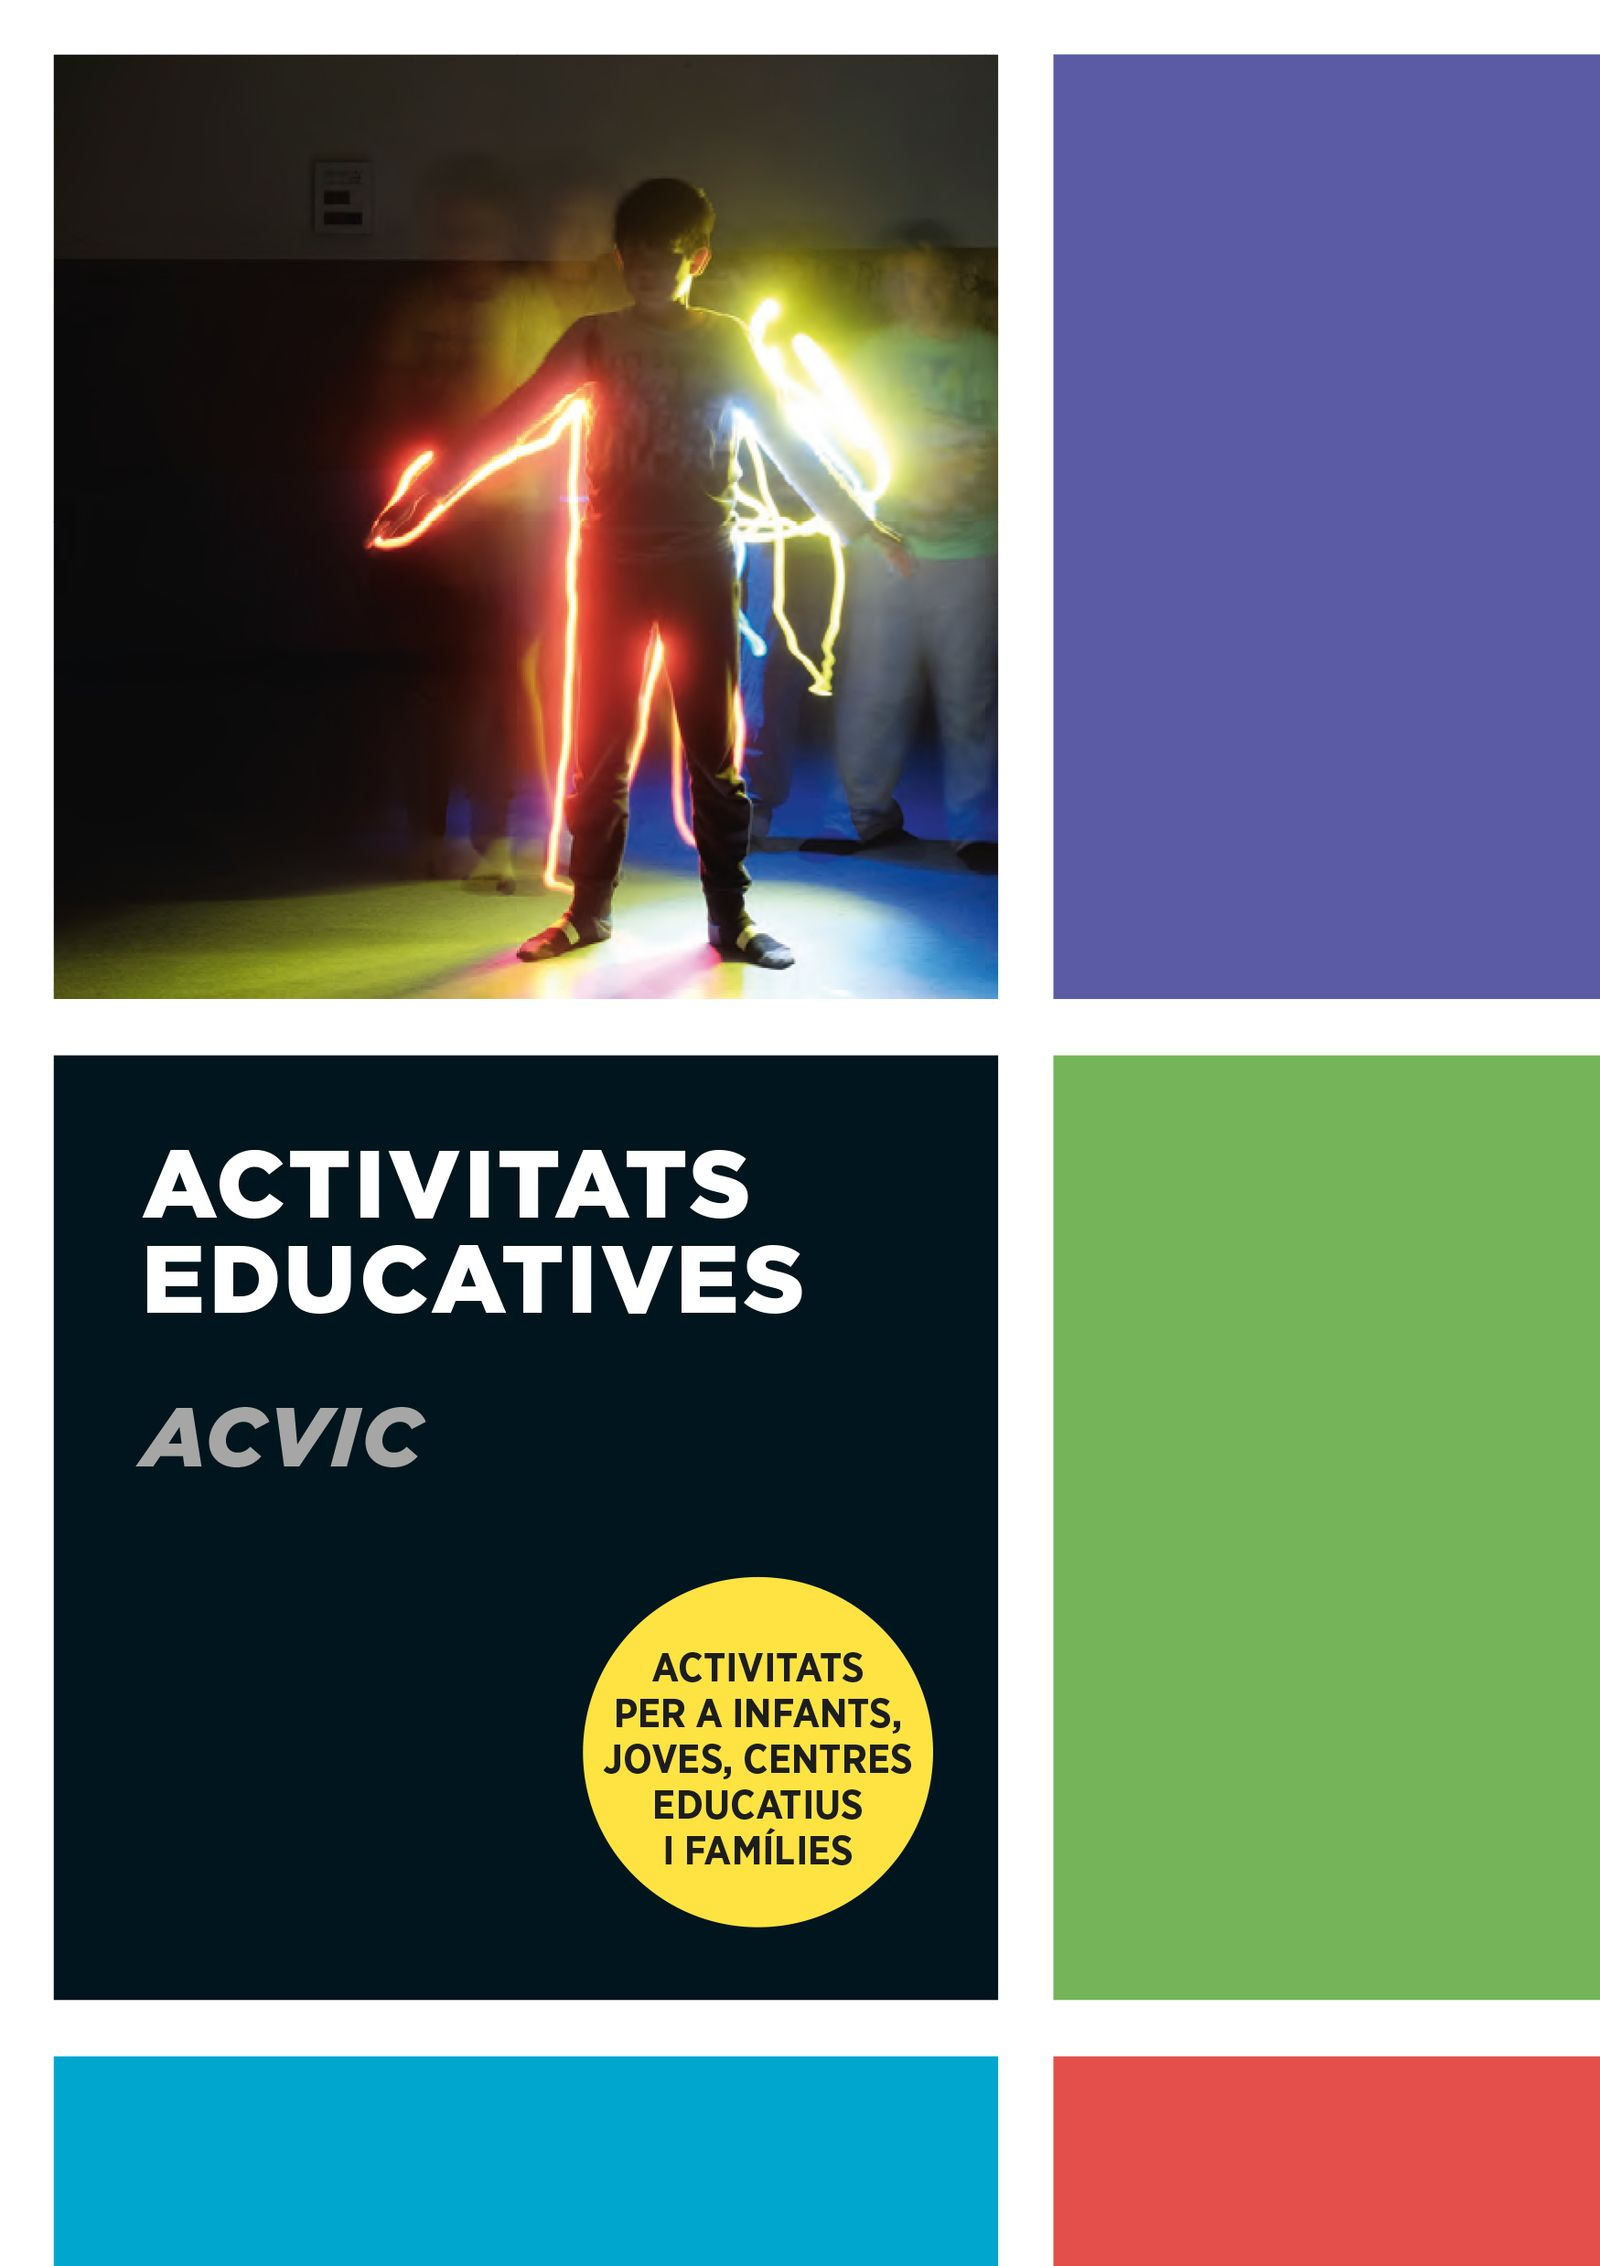 01.10.2018 desplegable activ educatives 1